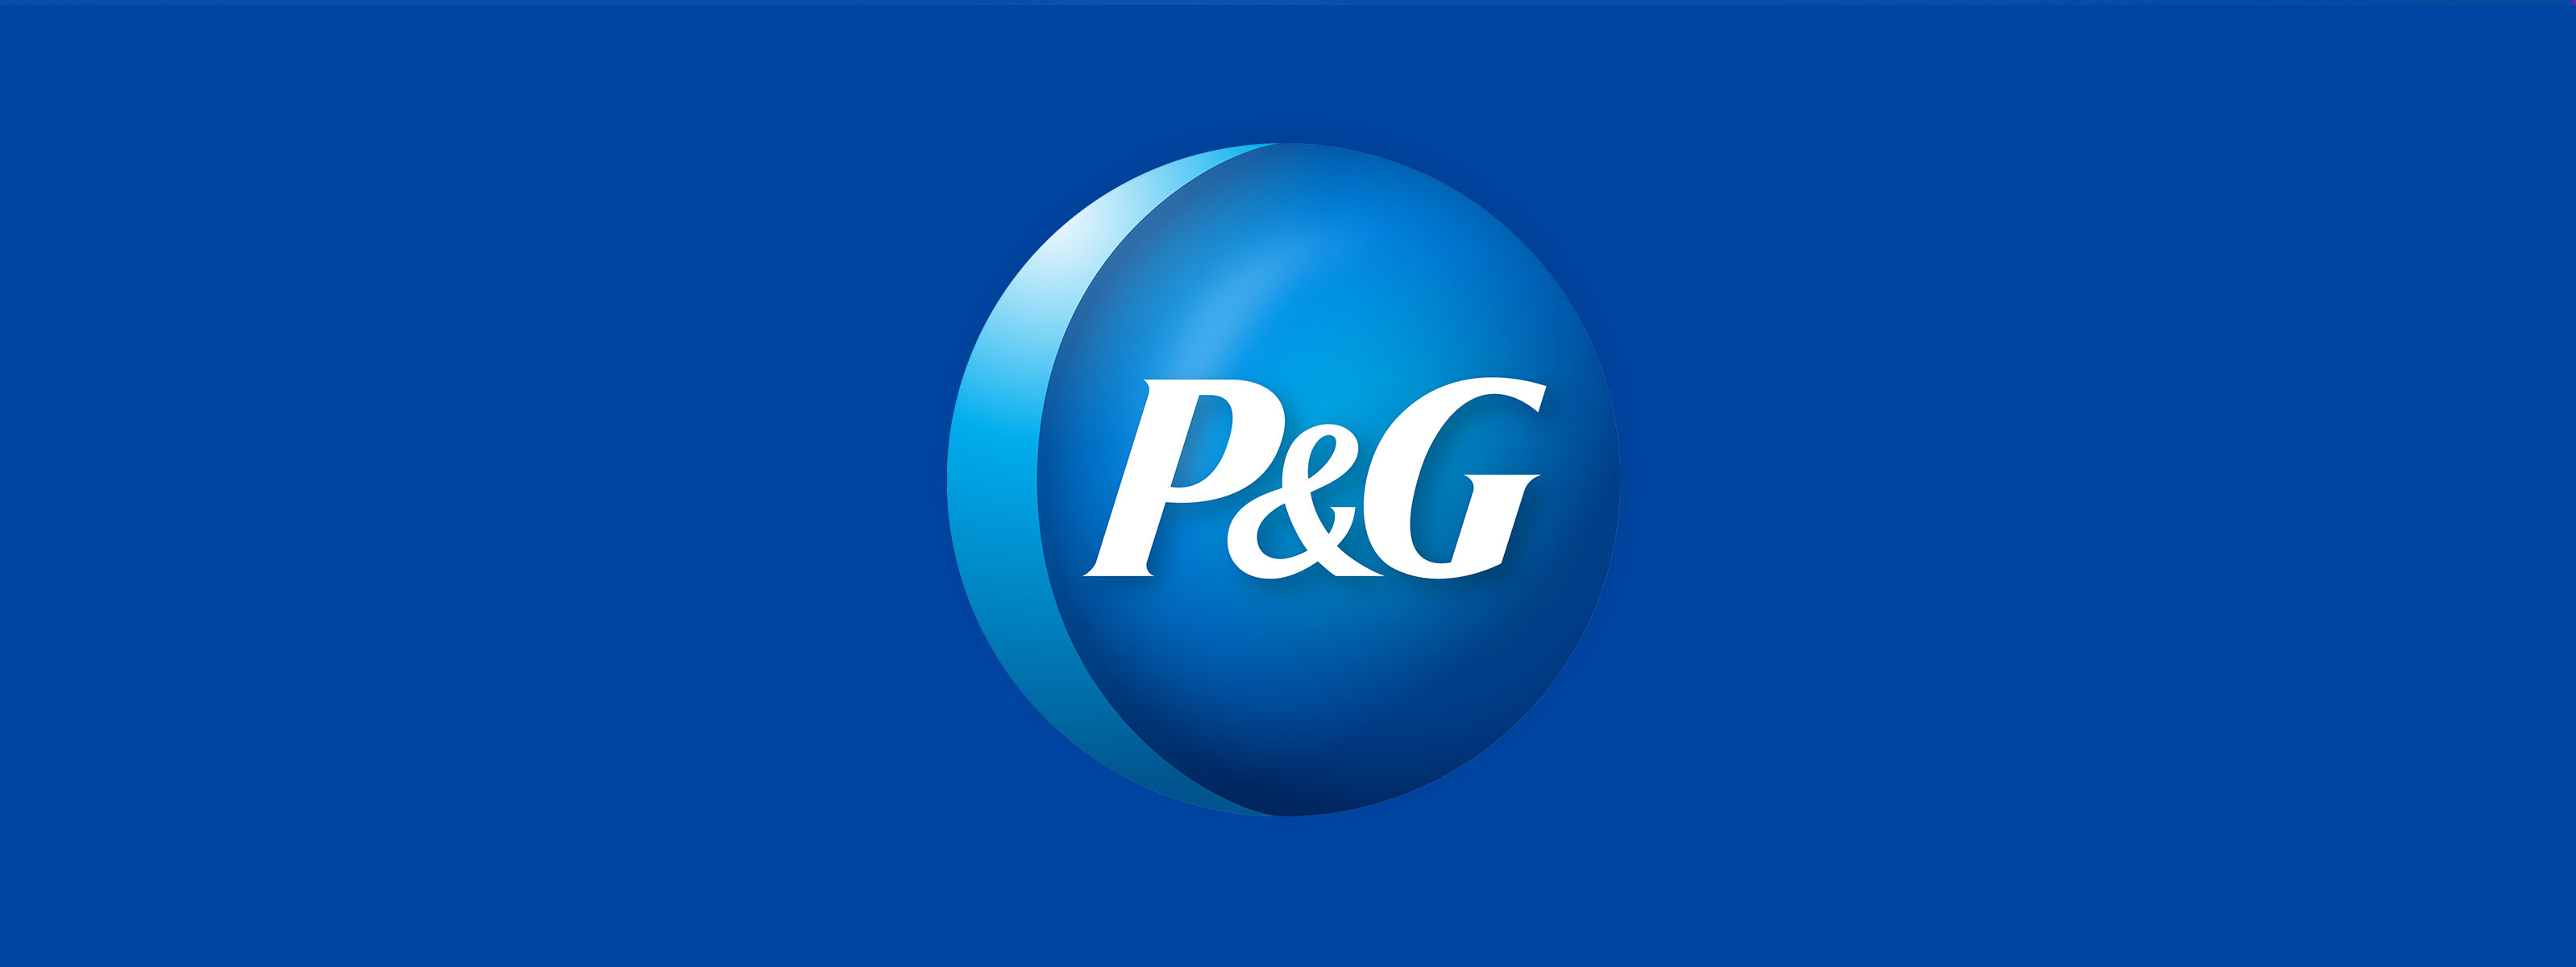 Procter and Gamble Banner